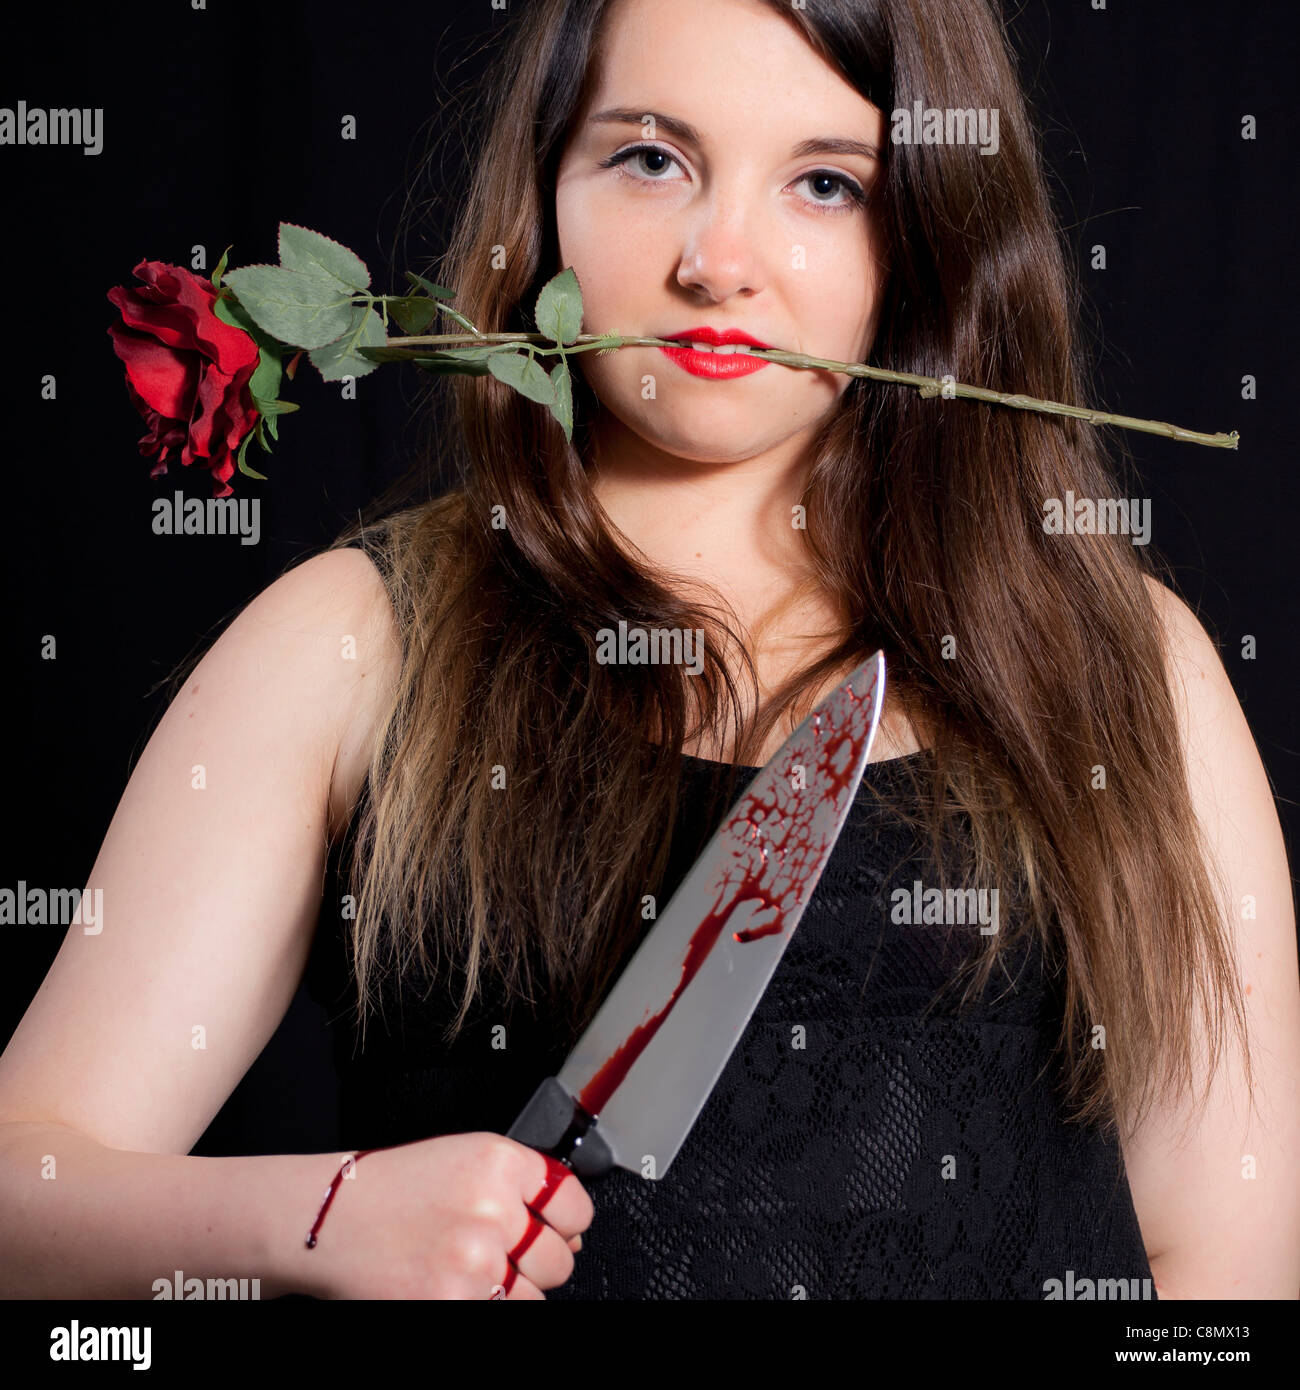 young woman with a bloody knife and a red rose - Stock Image